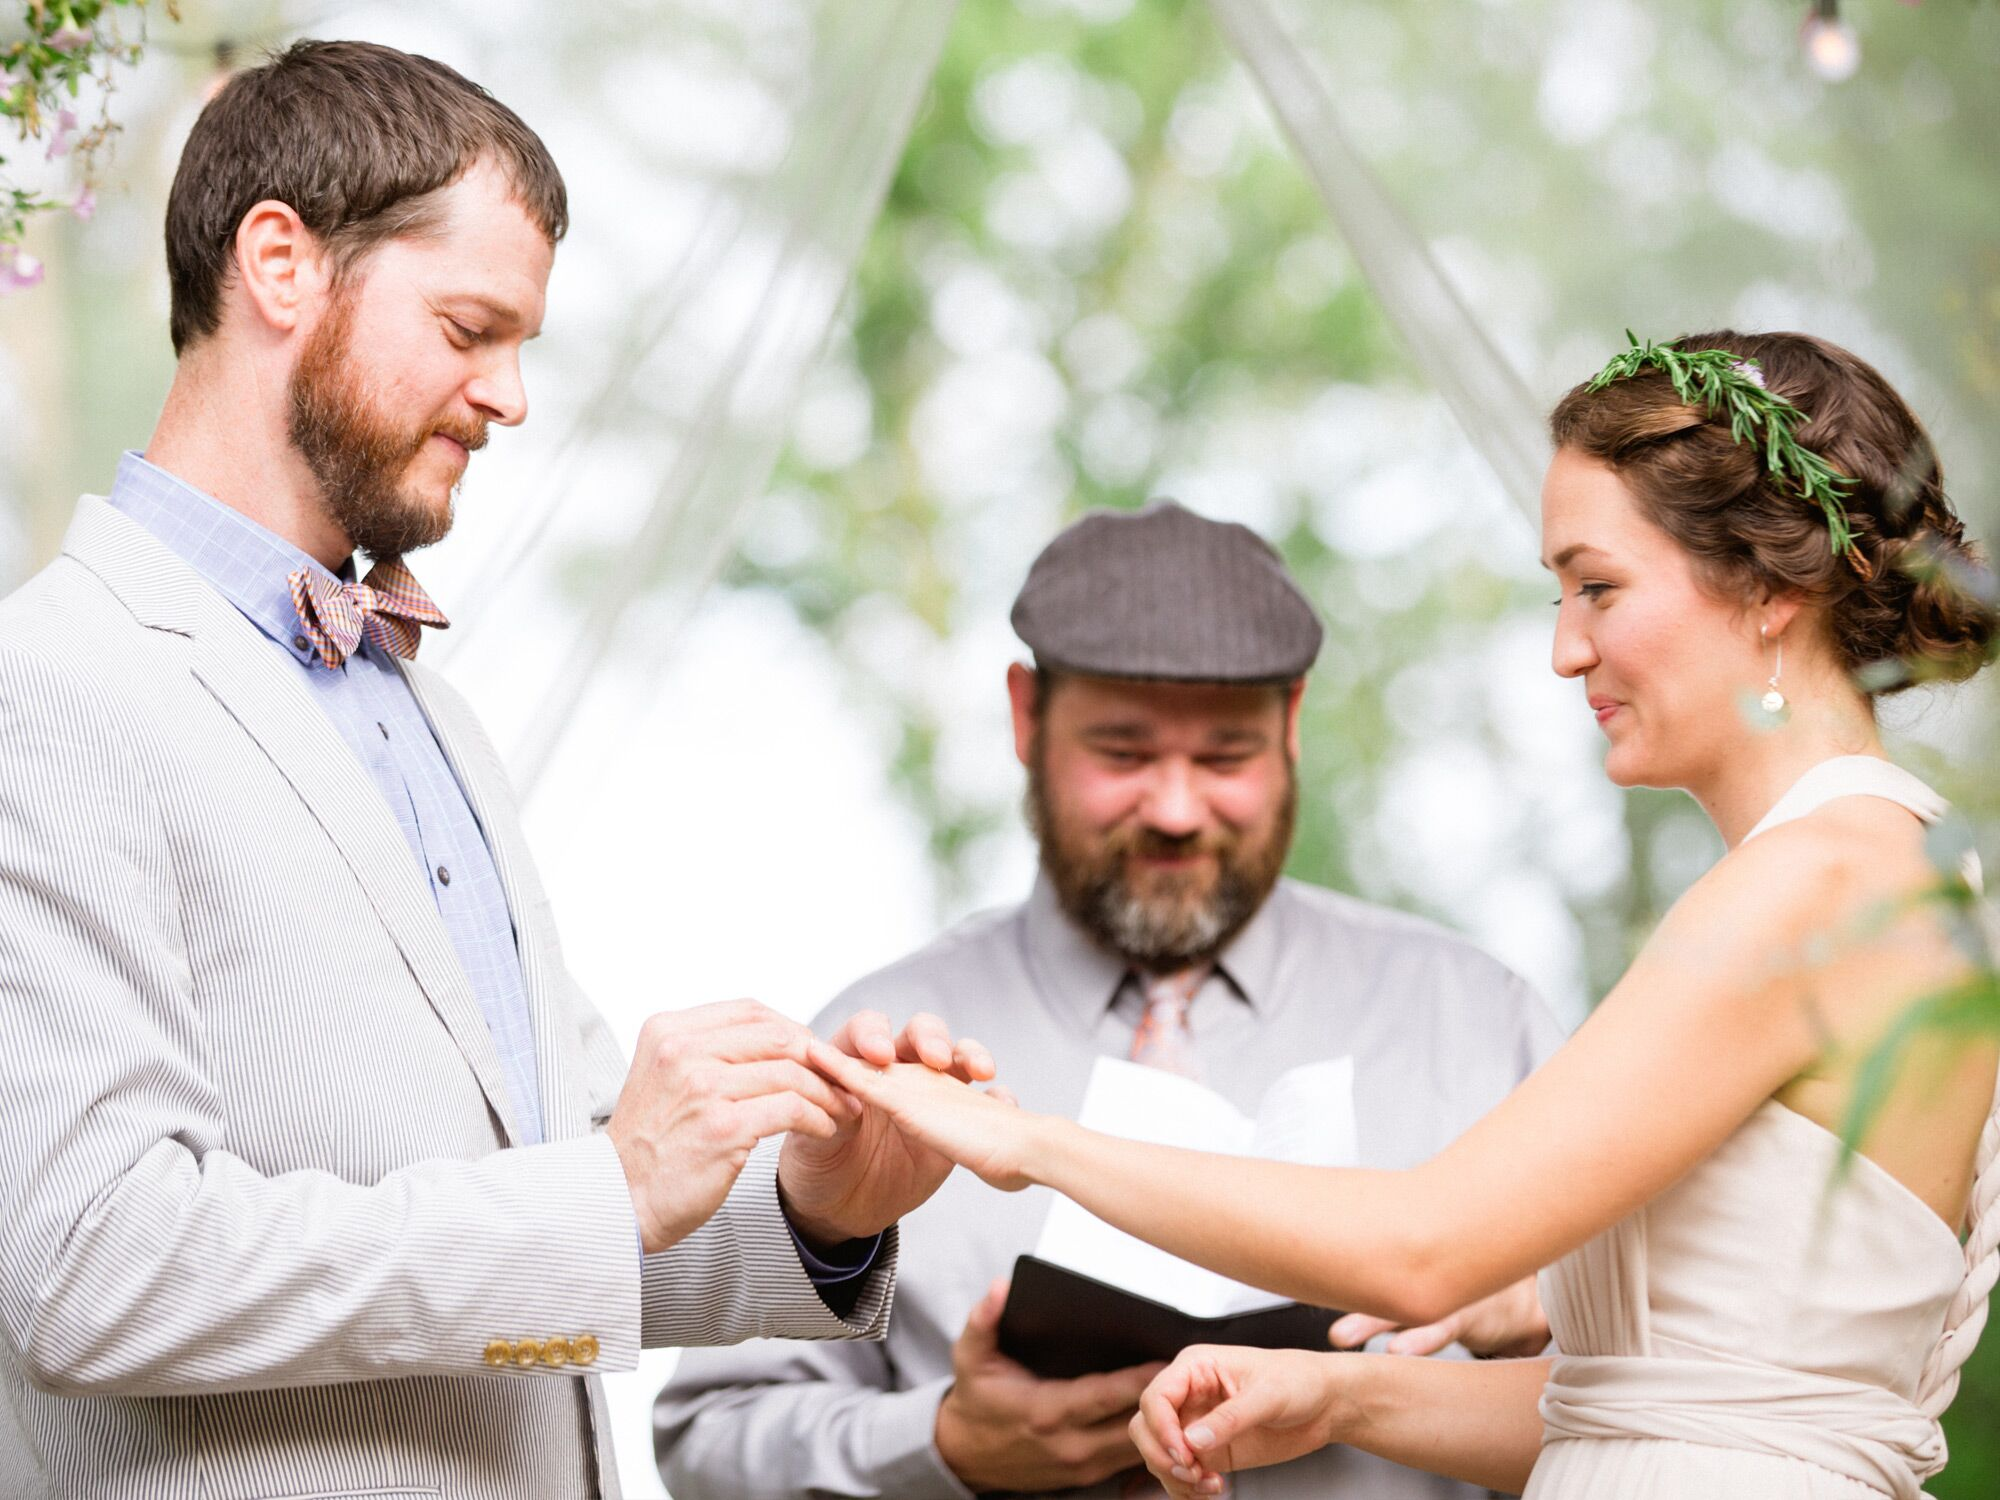 Ceremony: 10 Questions To Ask Your Civil Officiant